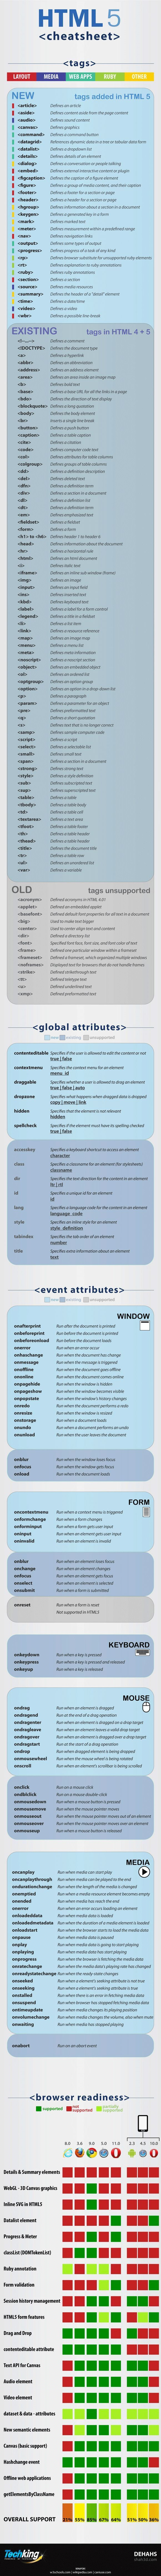 HTML Short Cuts and Codes All in One Place : List of HTML Tags | Shibley Smiles